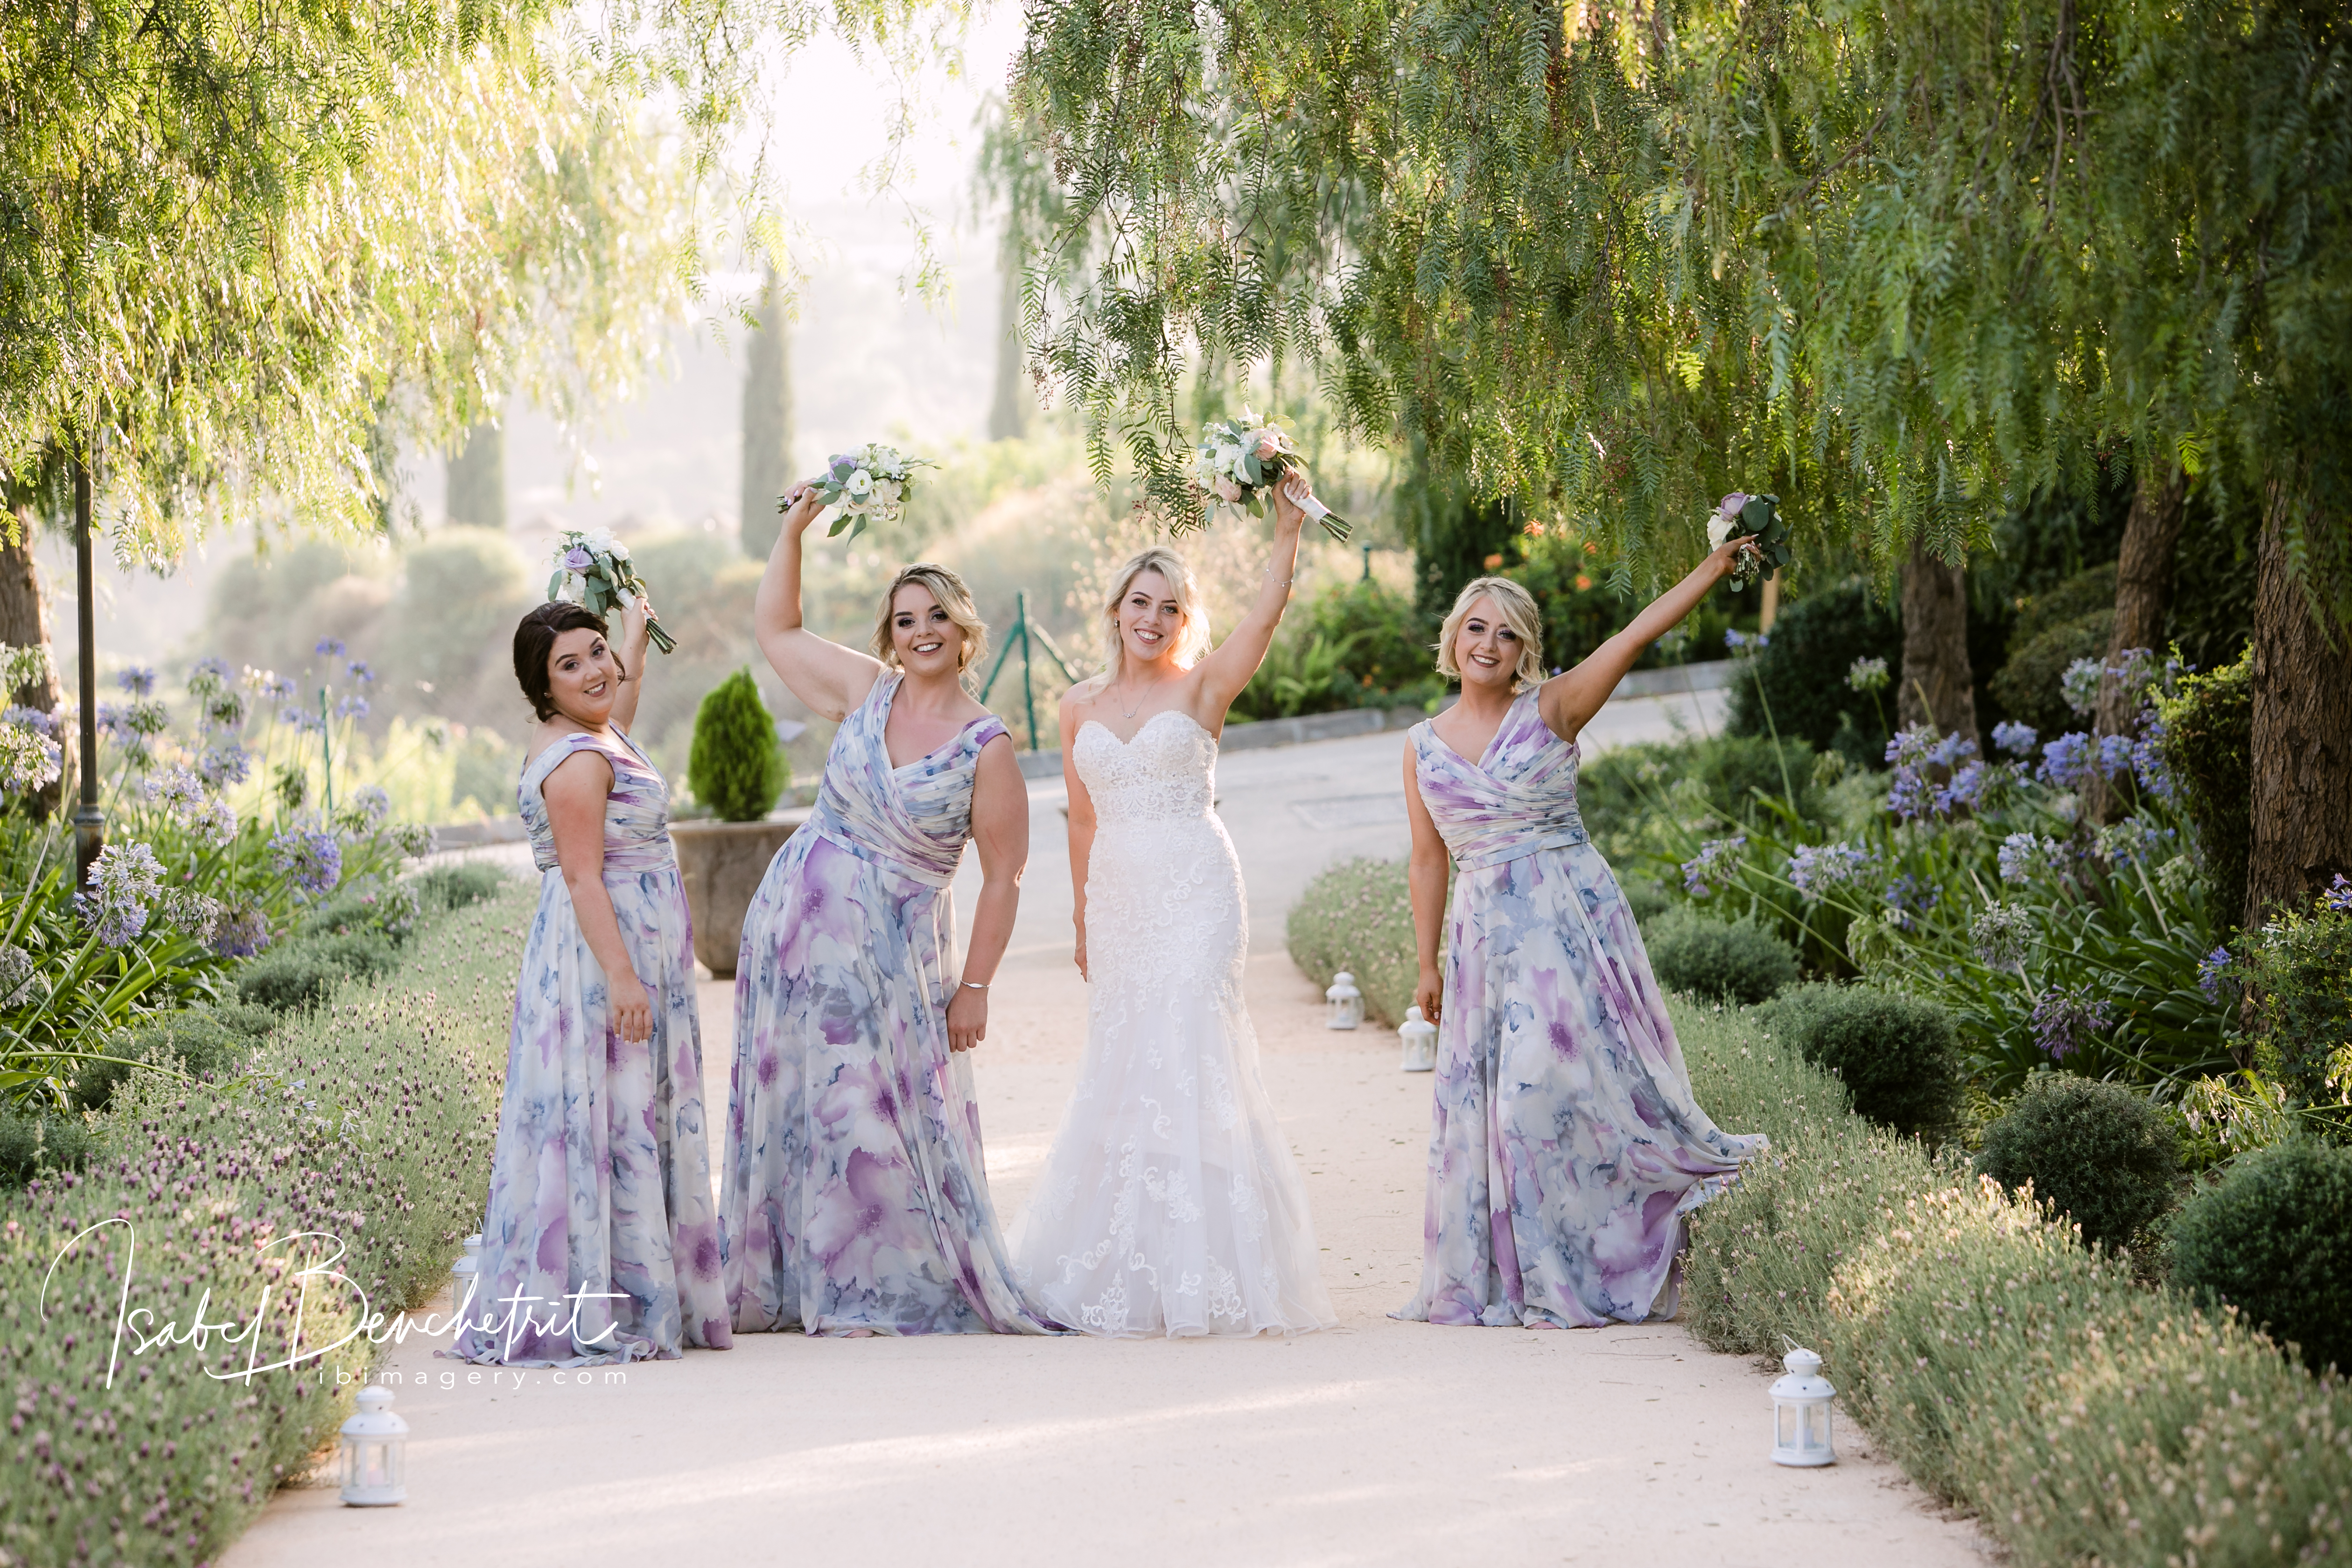 The bridesmaids in the spacious gardens of the Cortijo